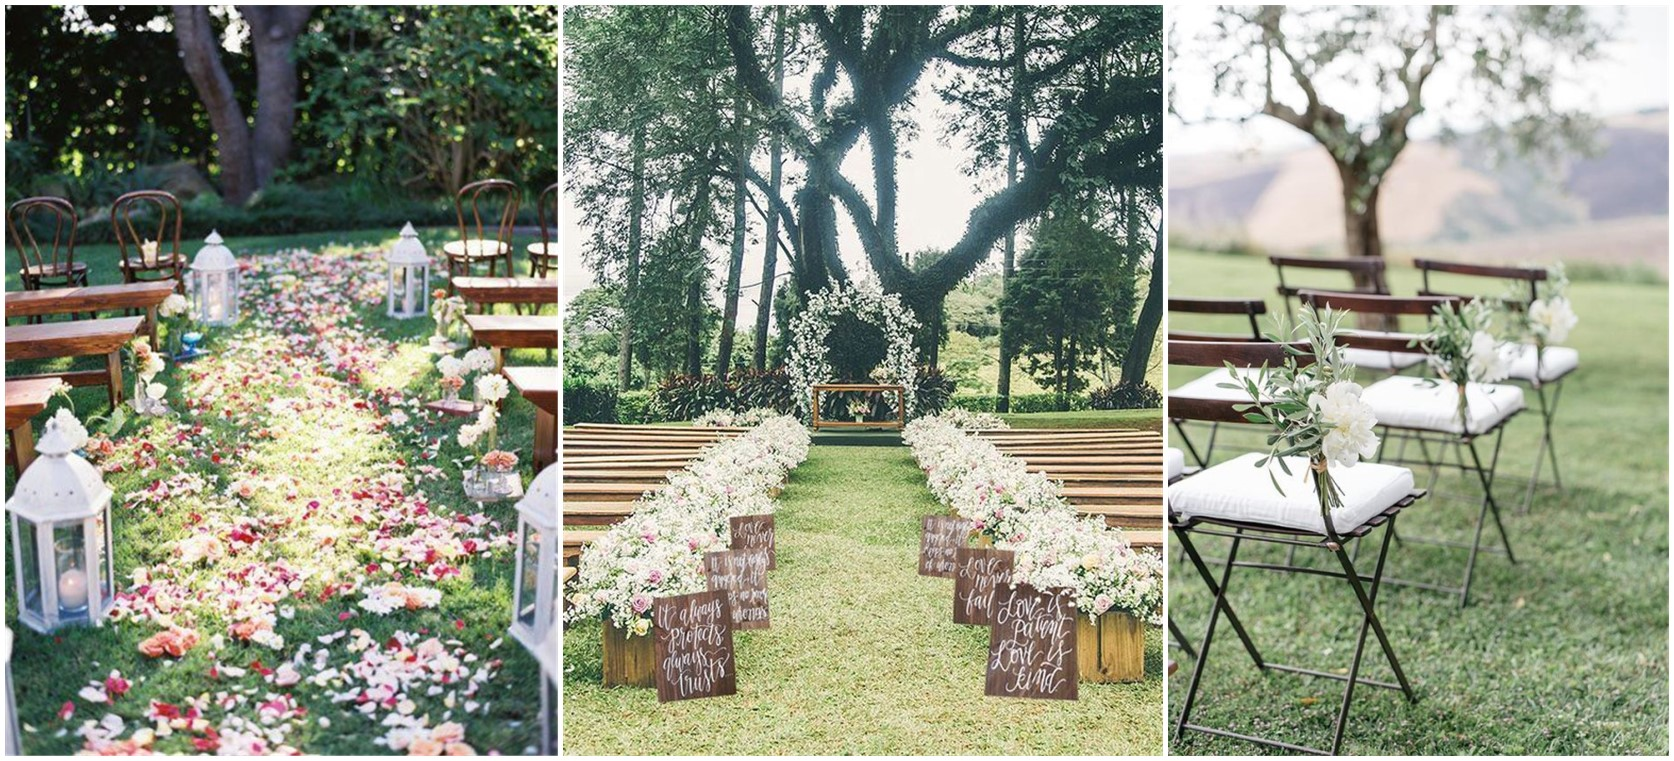 Outdoor Wedding Ceremony: Out Door & ... Outdoor Revide Grupo Que Financiou De